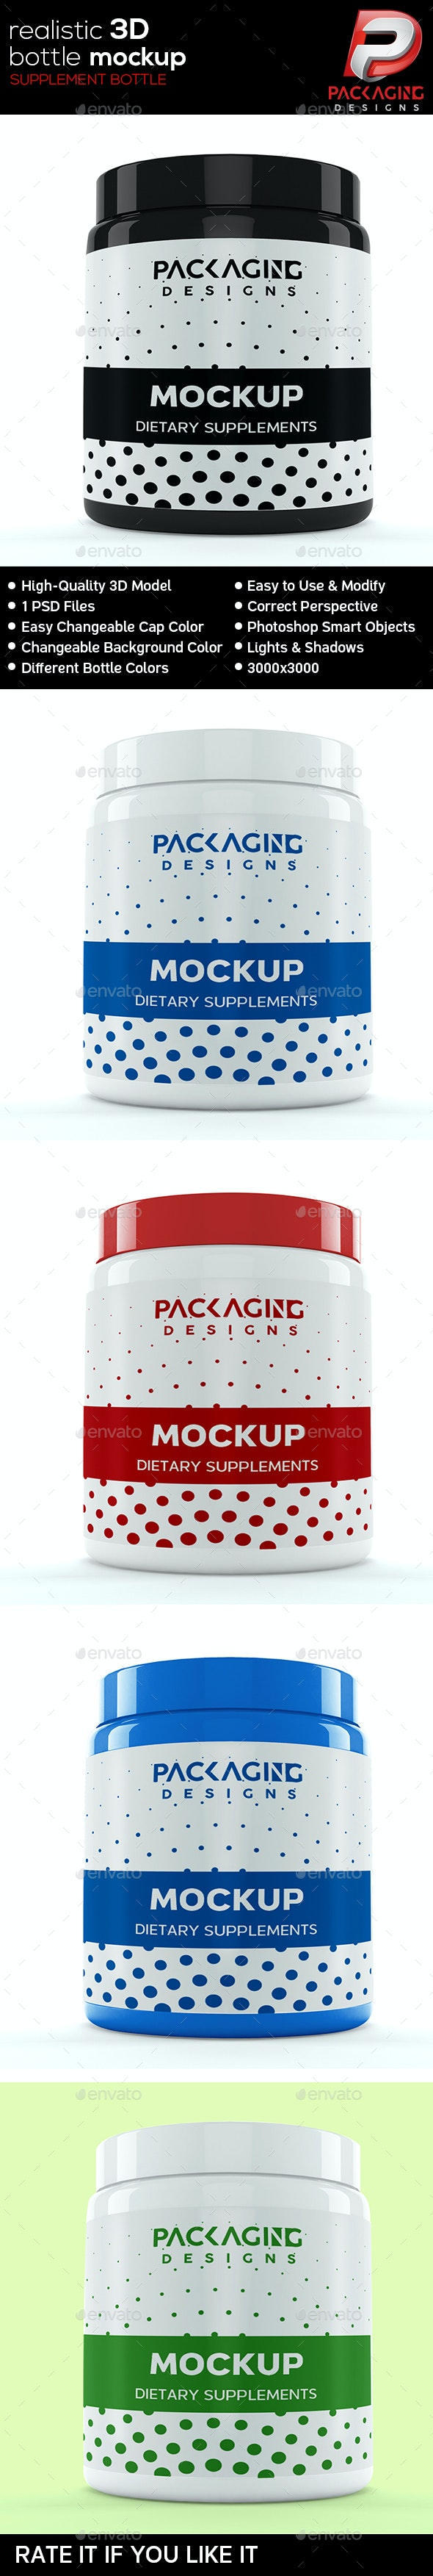 Realistic 3D Supplement Bottle Mock-Up-6 - Packaging Product Mock-Ups